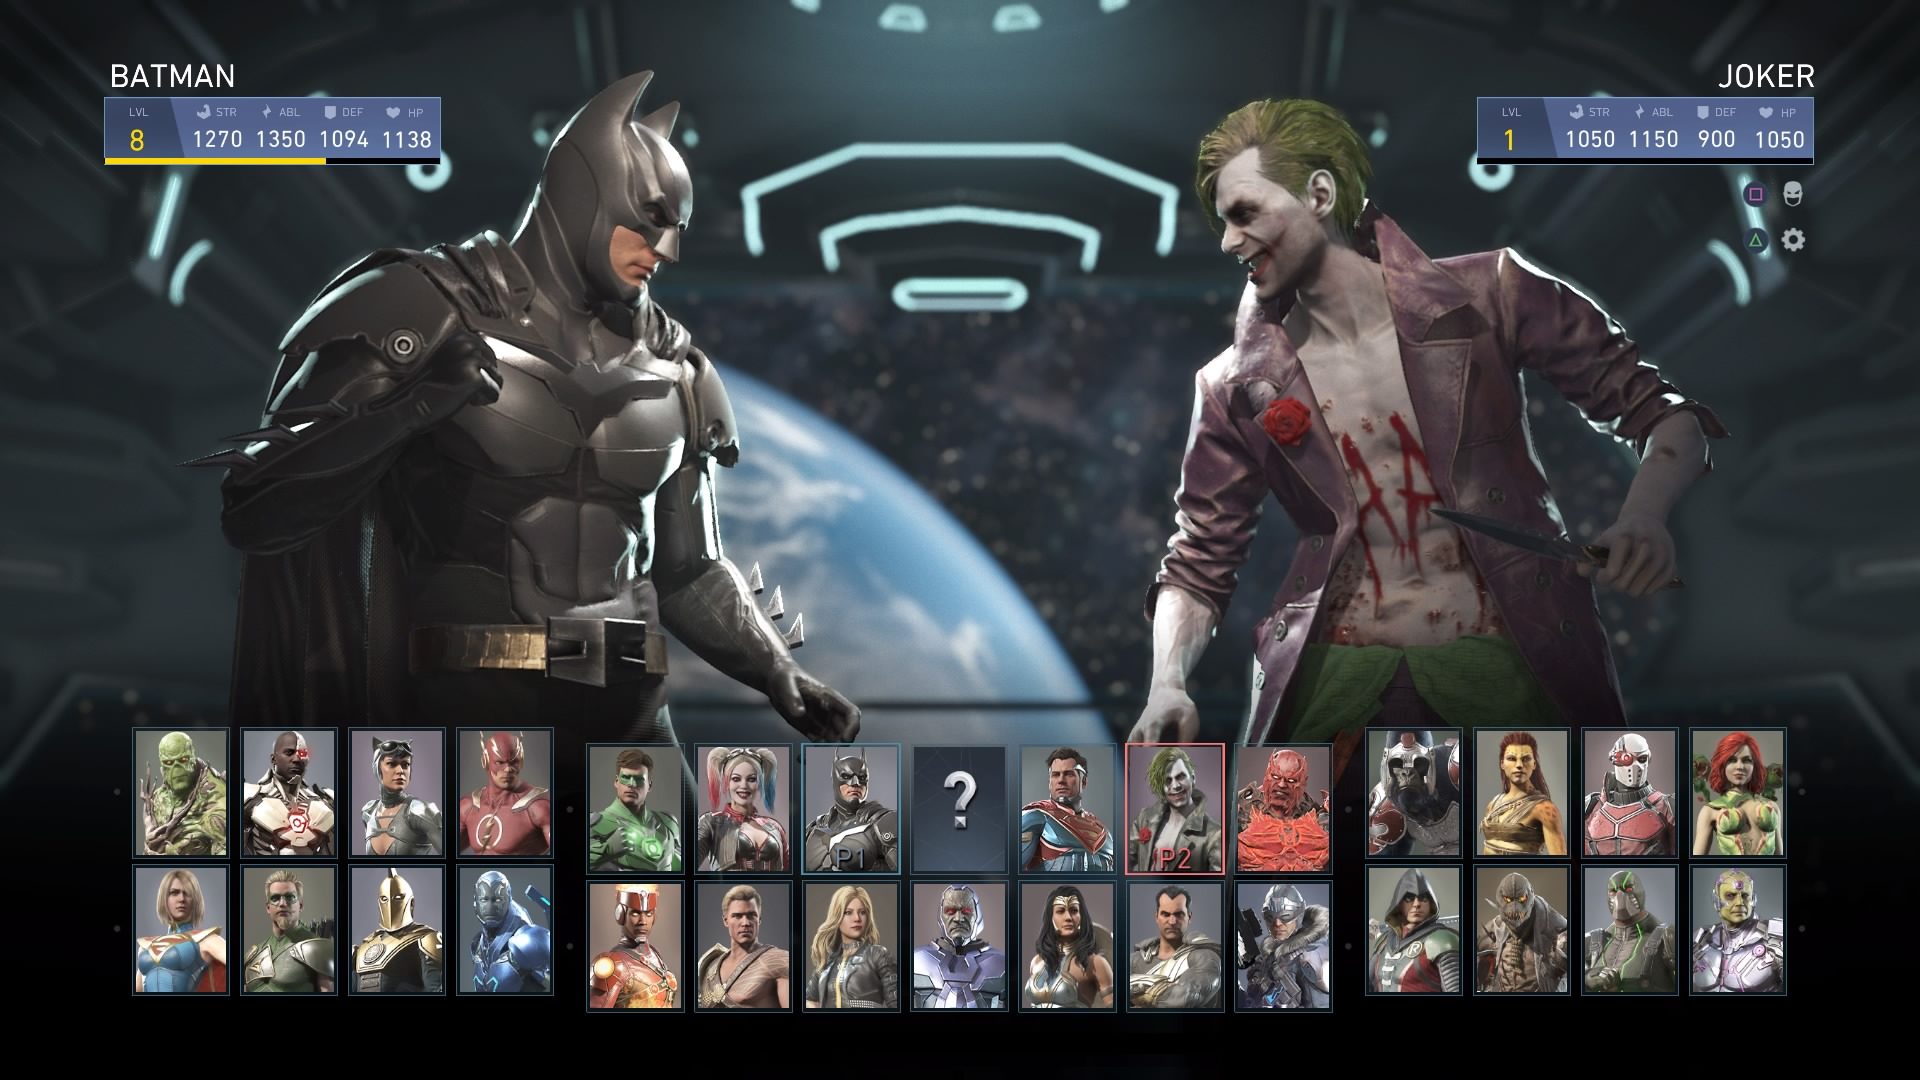 Injustice 2 The Greatest Gladiator Matches In The